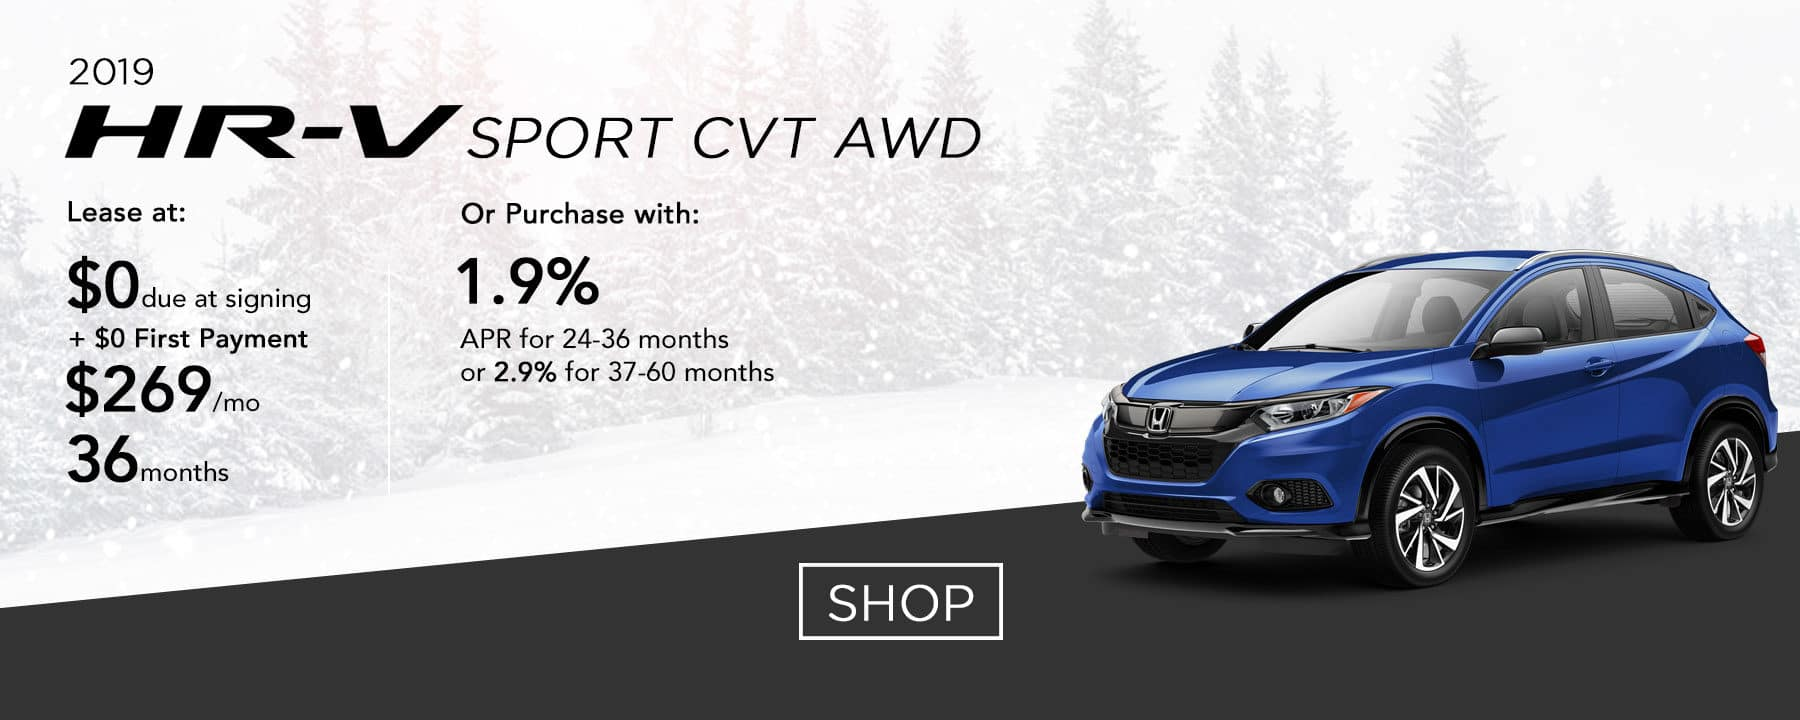 Lease a 2019 HR-V Sport CVT AWD for $269 per month or purchase with 1.9% APR up to 36 months